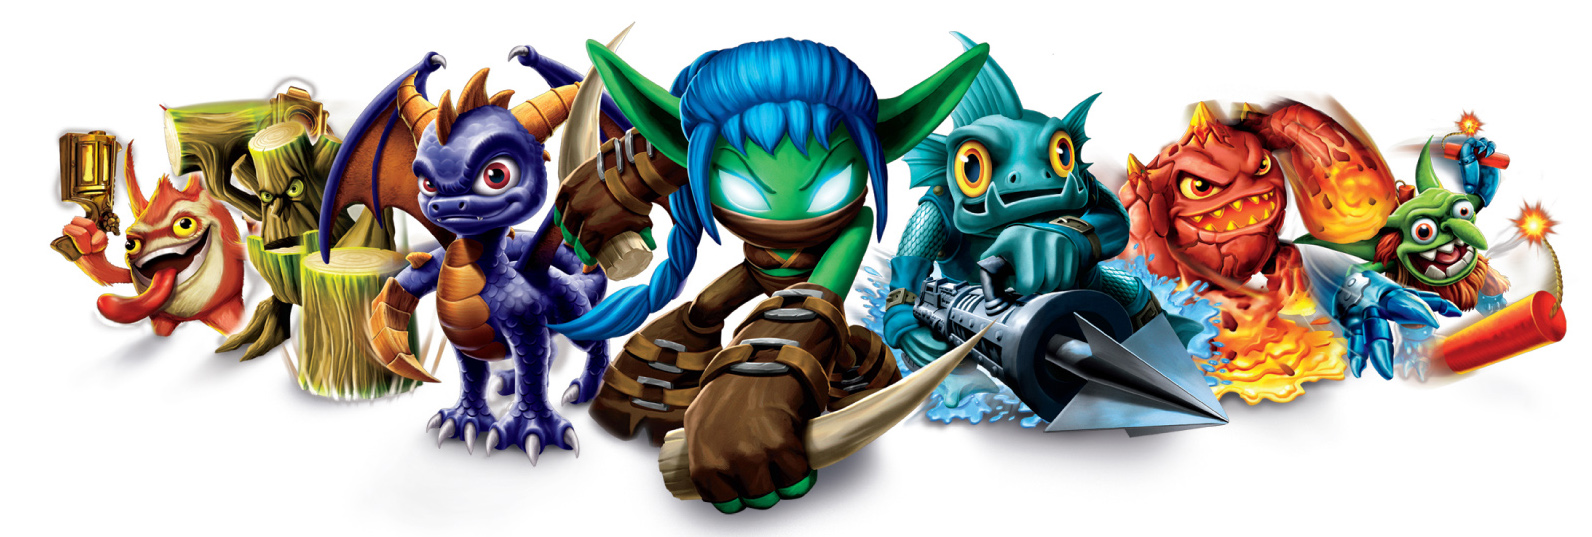 Investment Games – Here's Lookin' at You, Skylanders